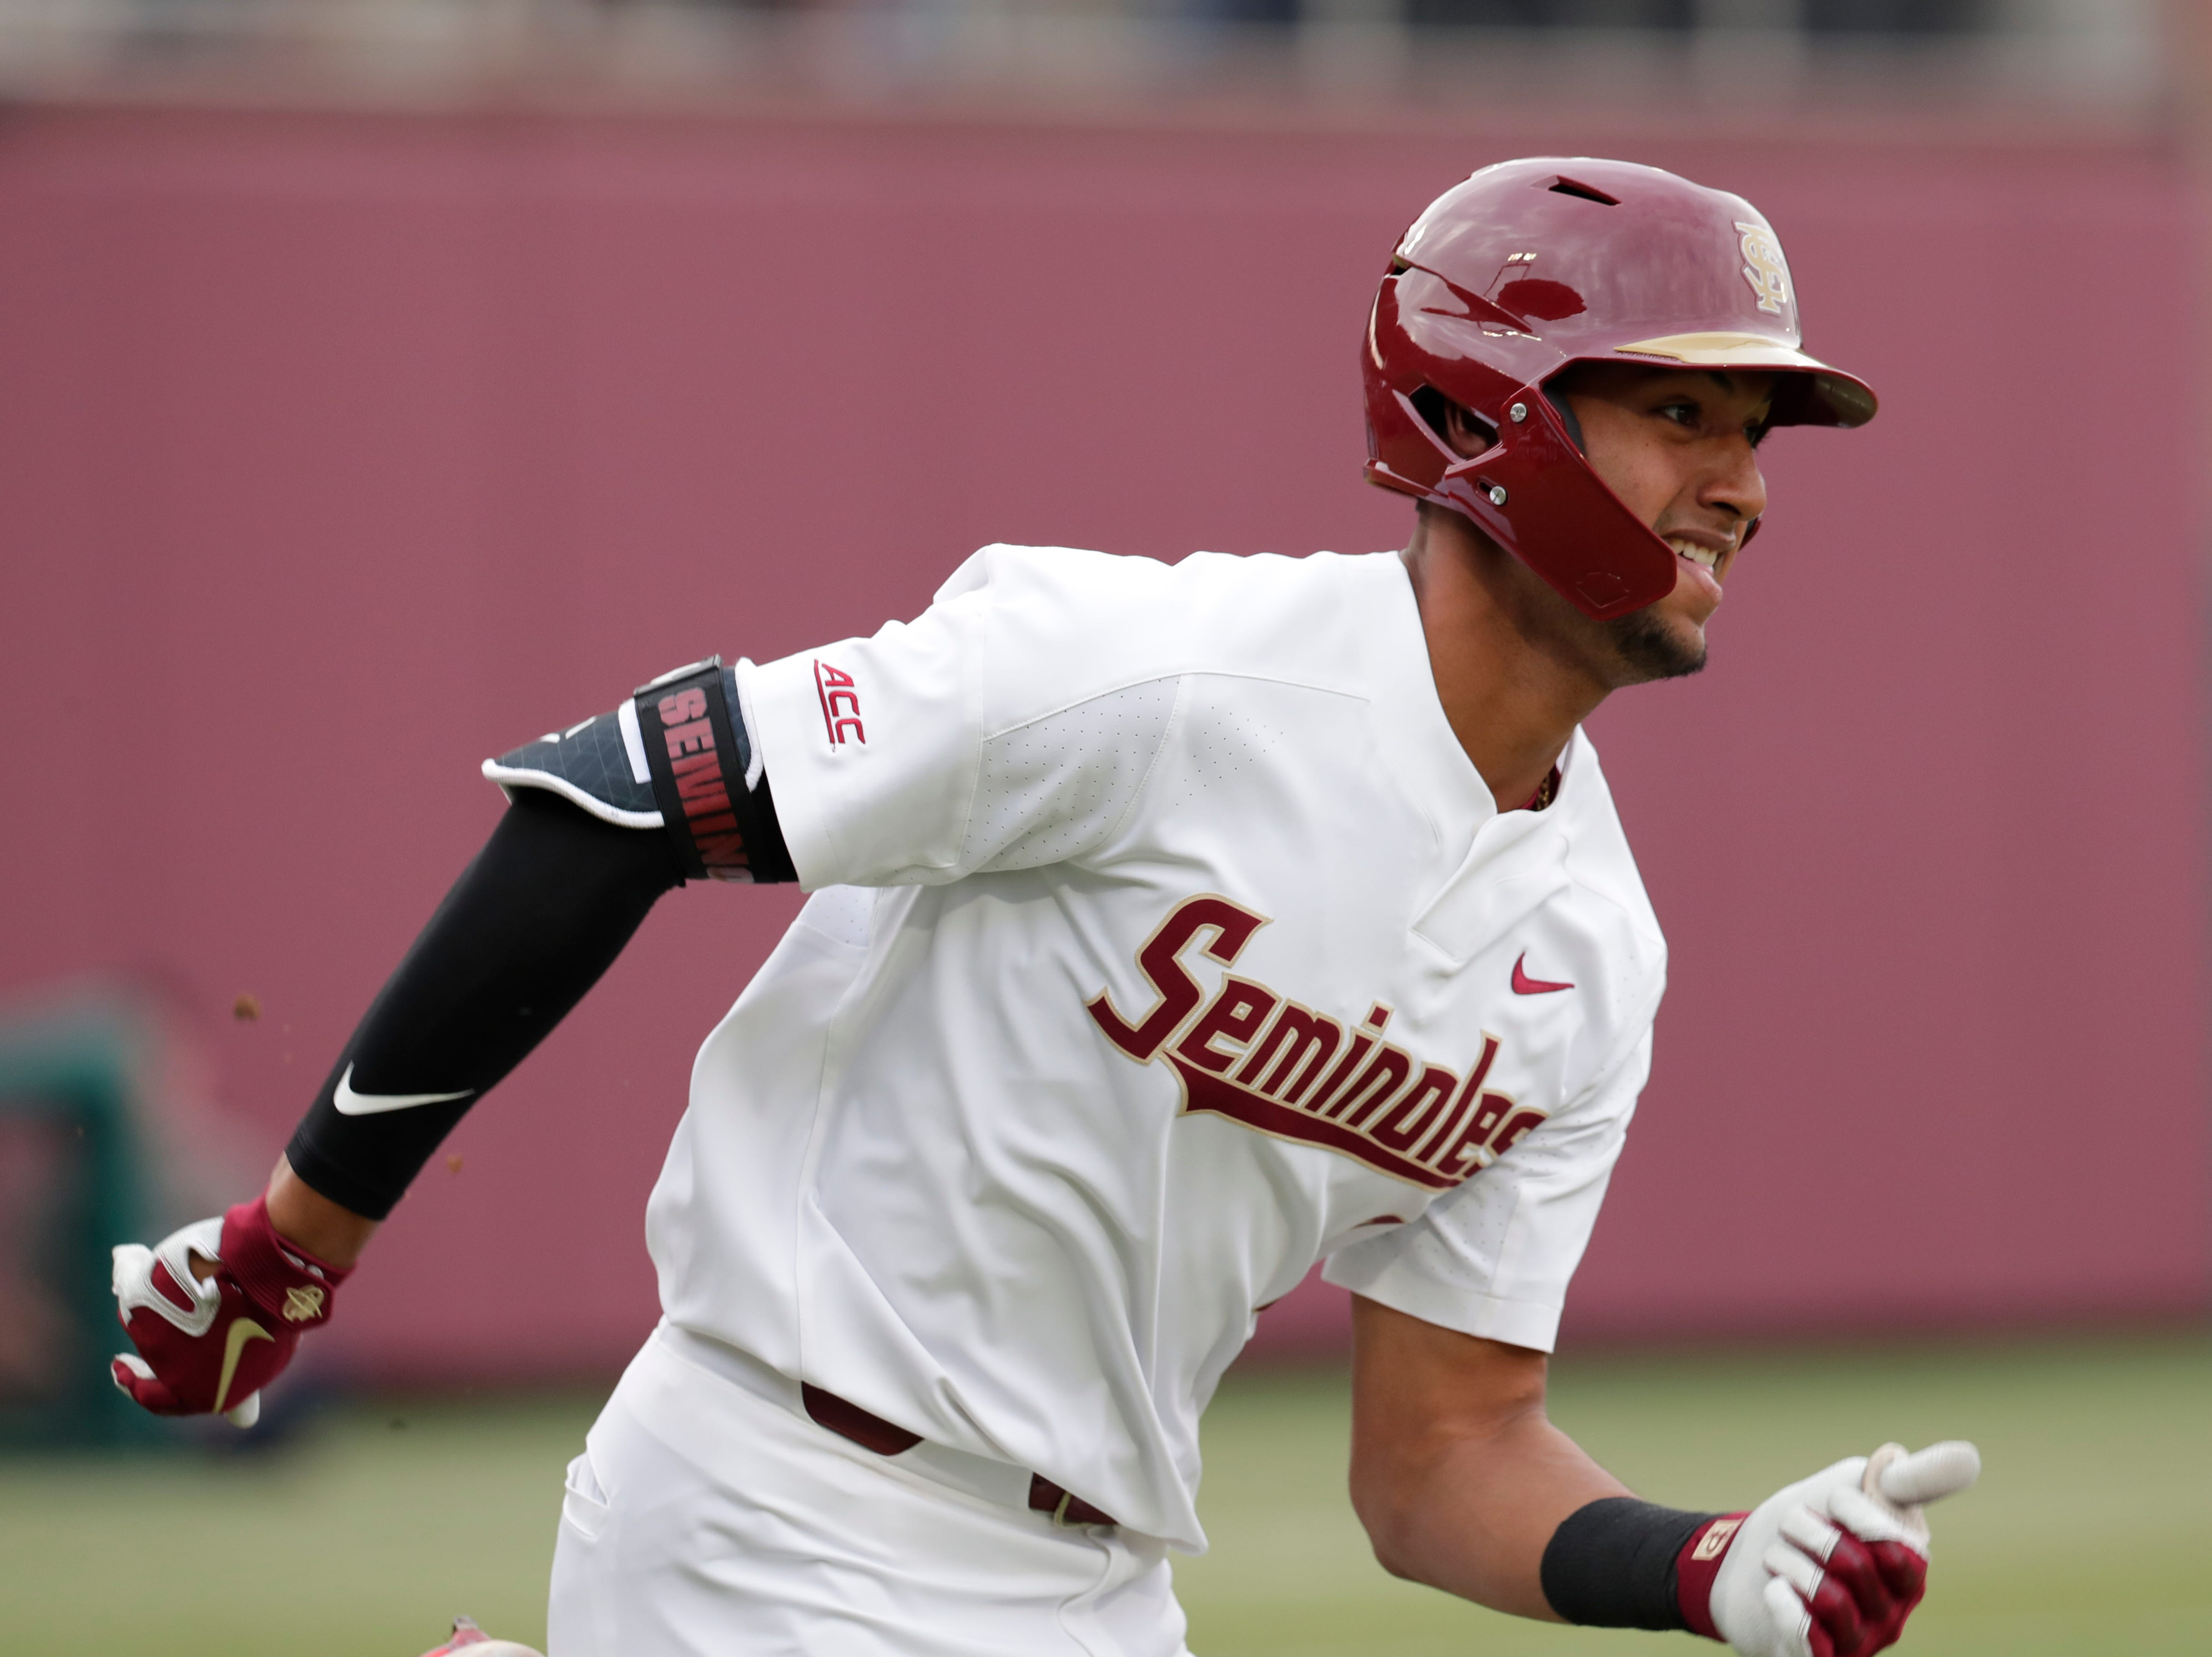 The Florida State Seminoles host the Maine Black Bears in the 2019 season opener game, Friday Feb. 15, 2019.